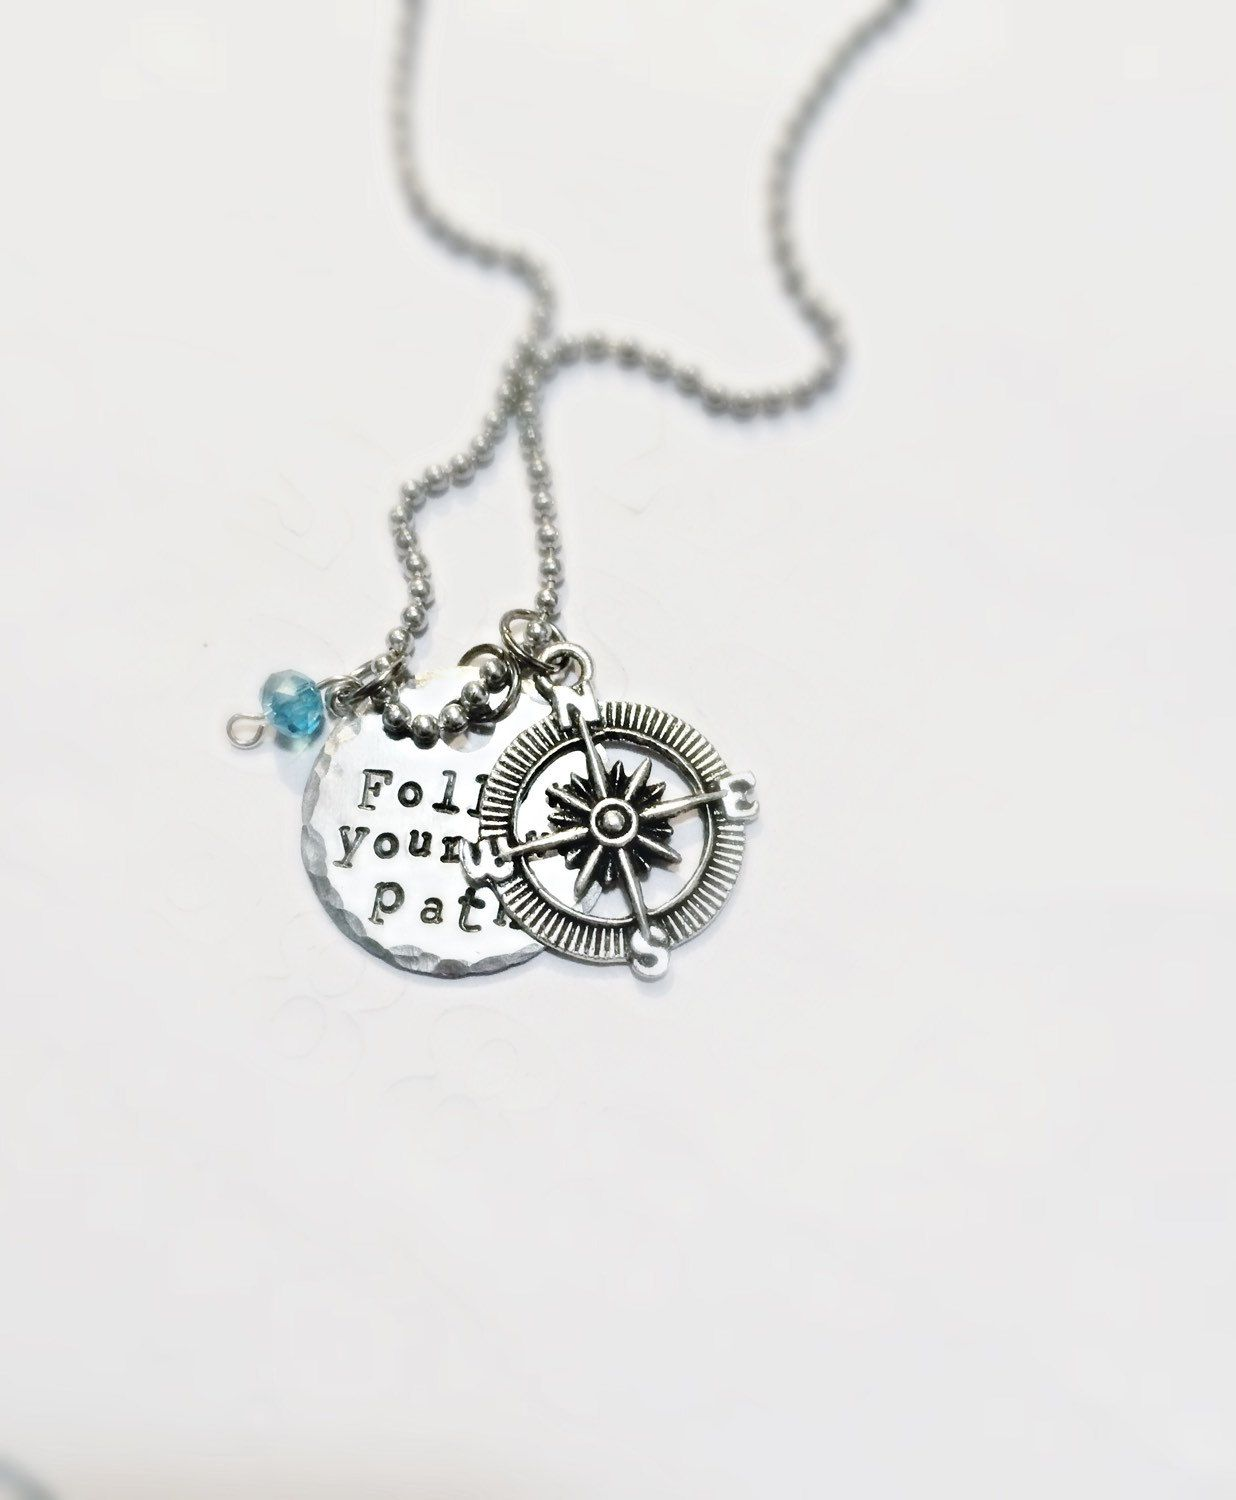 SaLe FREE colored stones add on option! Graduation gift Follow Your Own Path Compass Personalized Necklace~ by TinyTrinketShop on Etsy